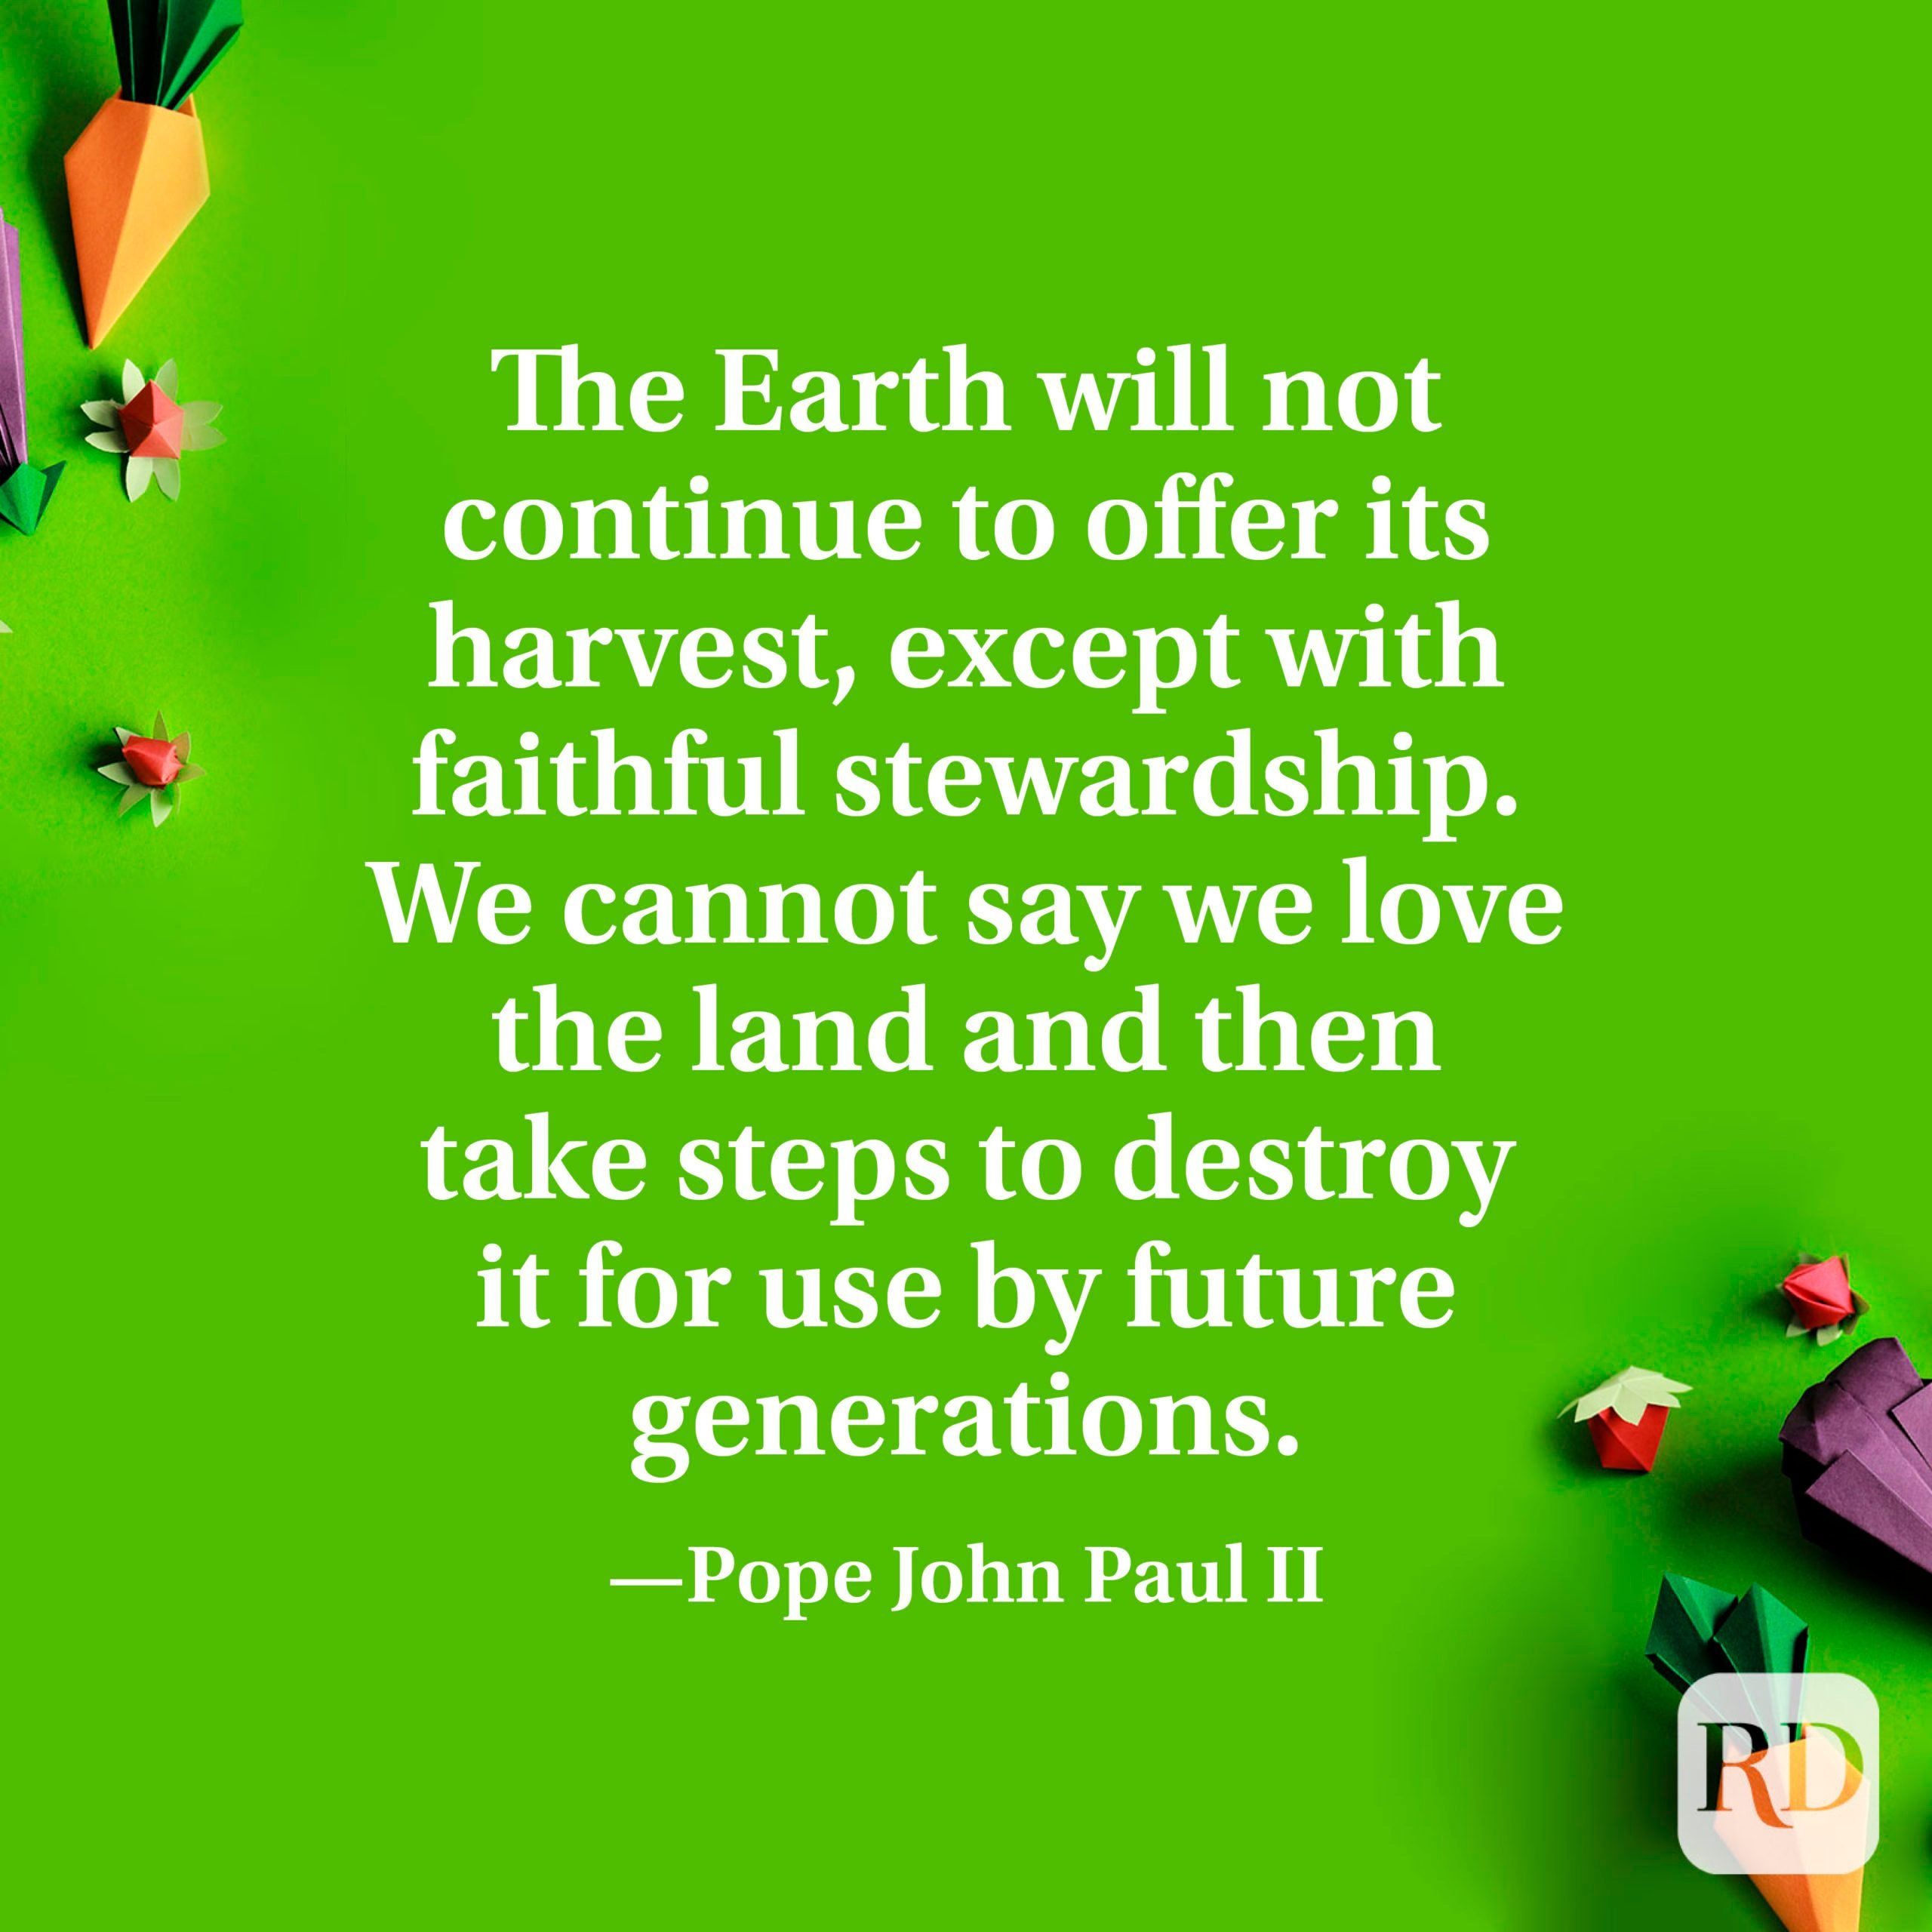 """""""The Earth will not continue to offer its harvest, except with faithful stewardship. We cannot say we love the land and then take steps to destroy it for use by future generations."""" —Pope John Paul II."""